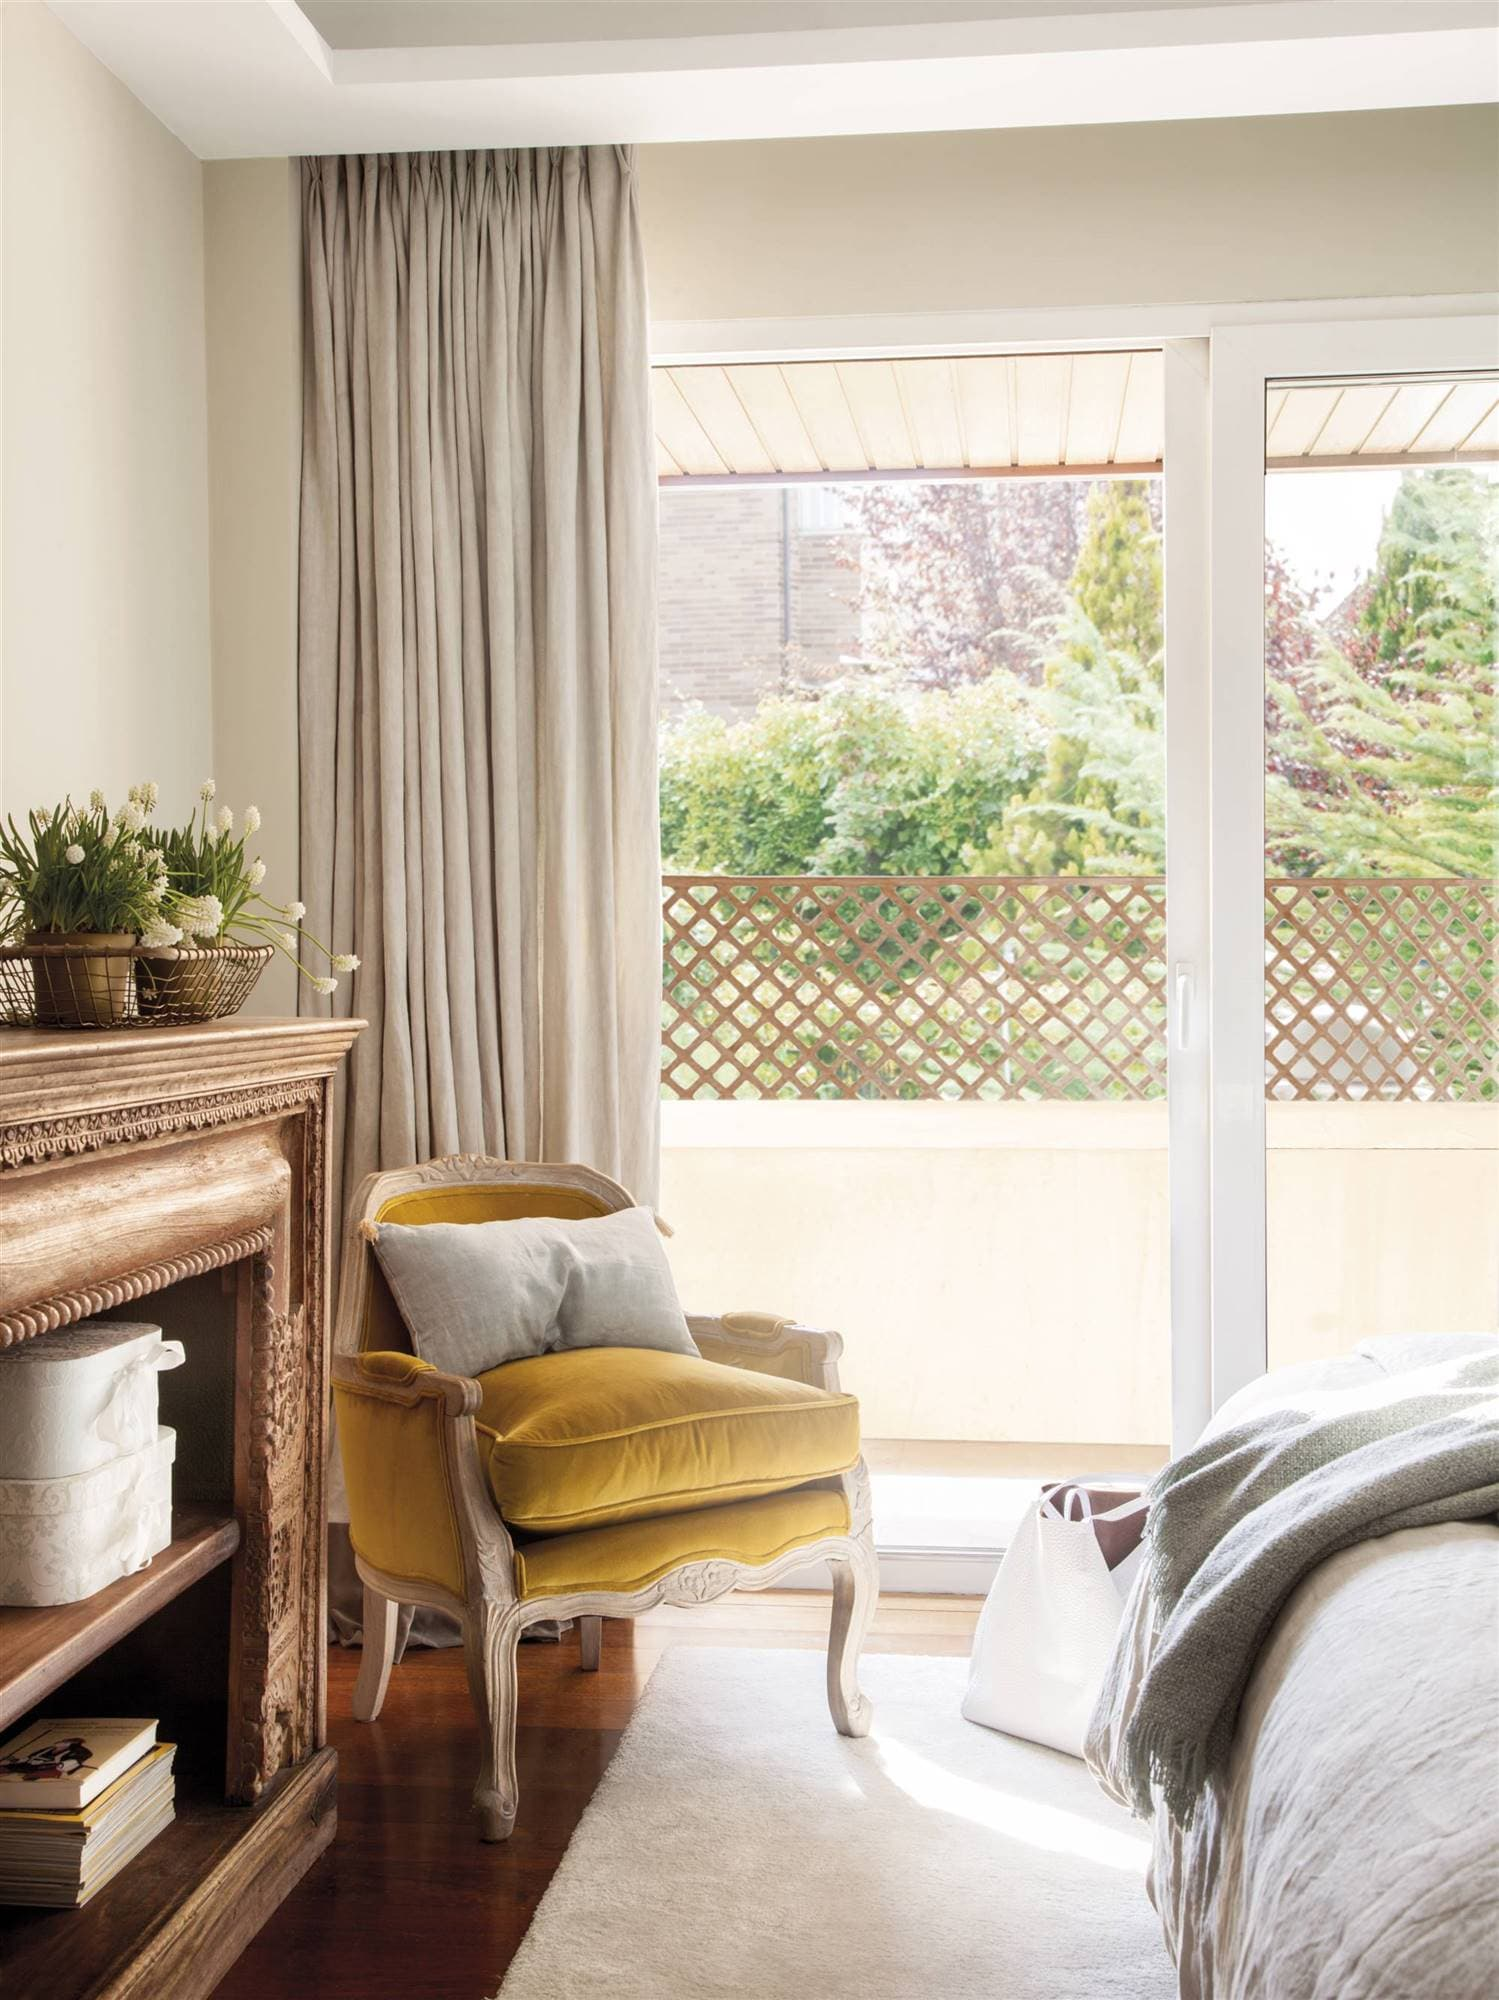 this is a shabby chic bedroom with light yellow walls